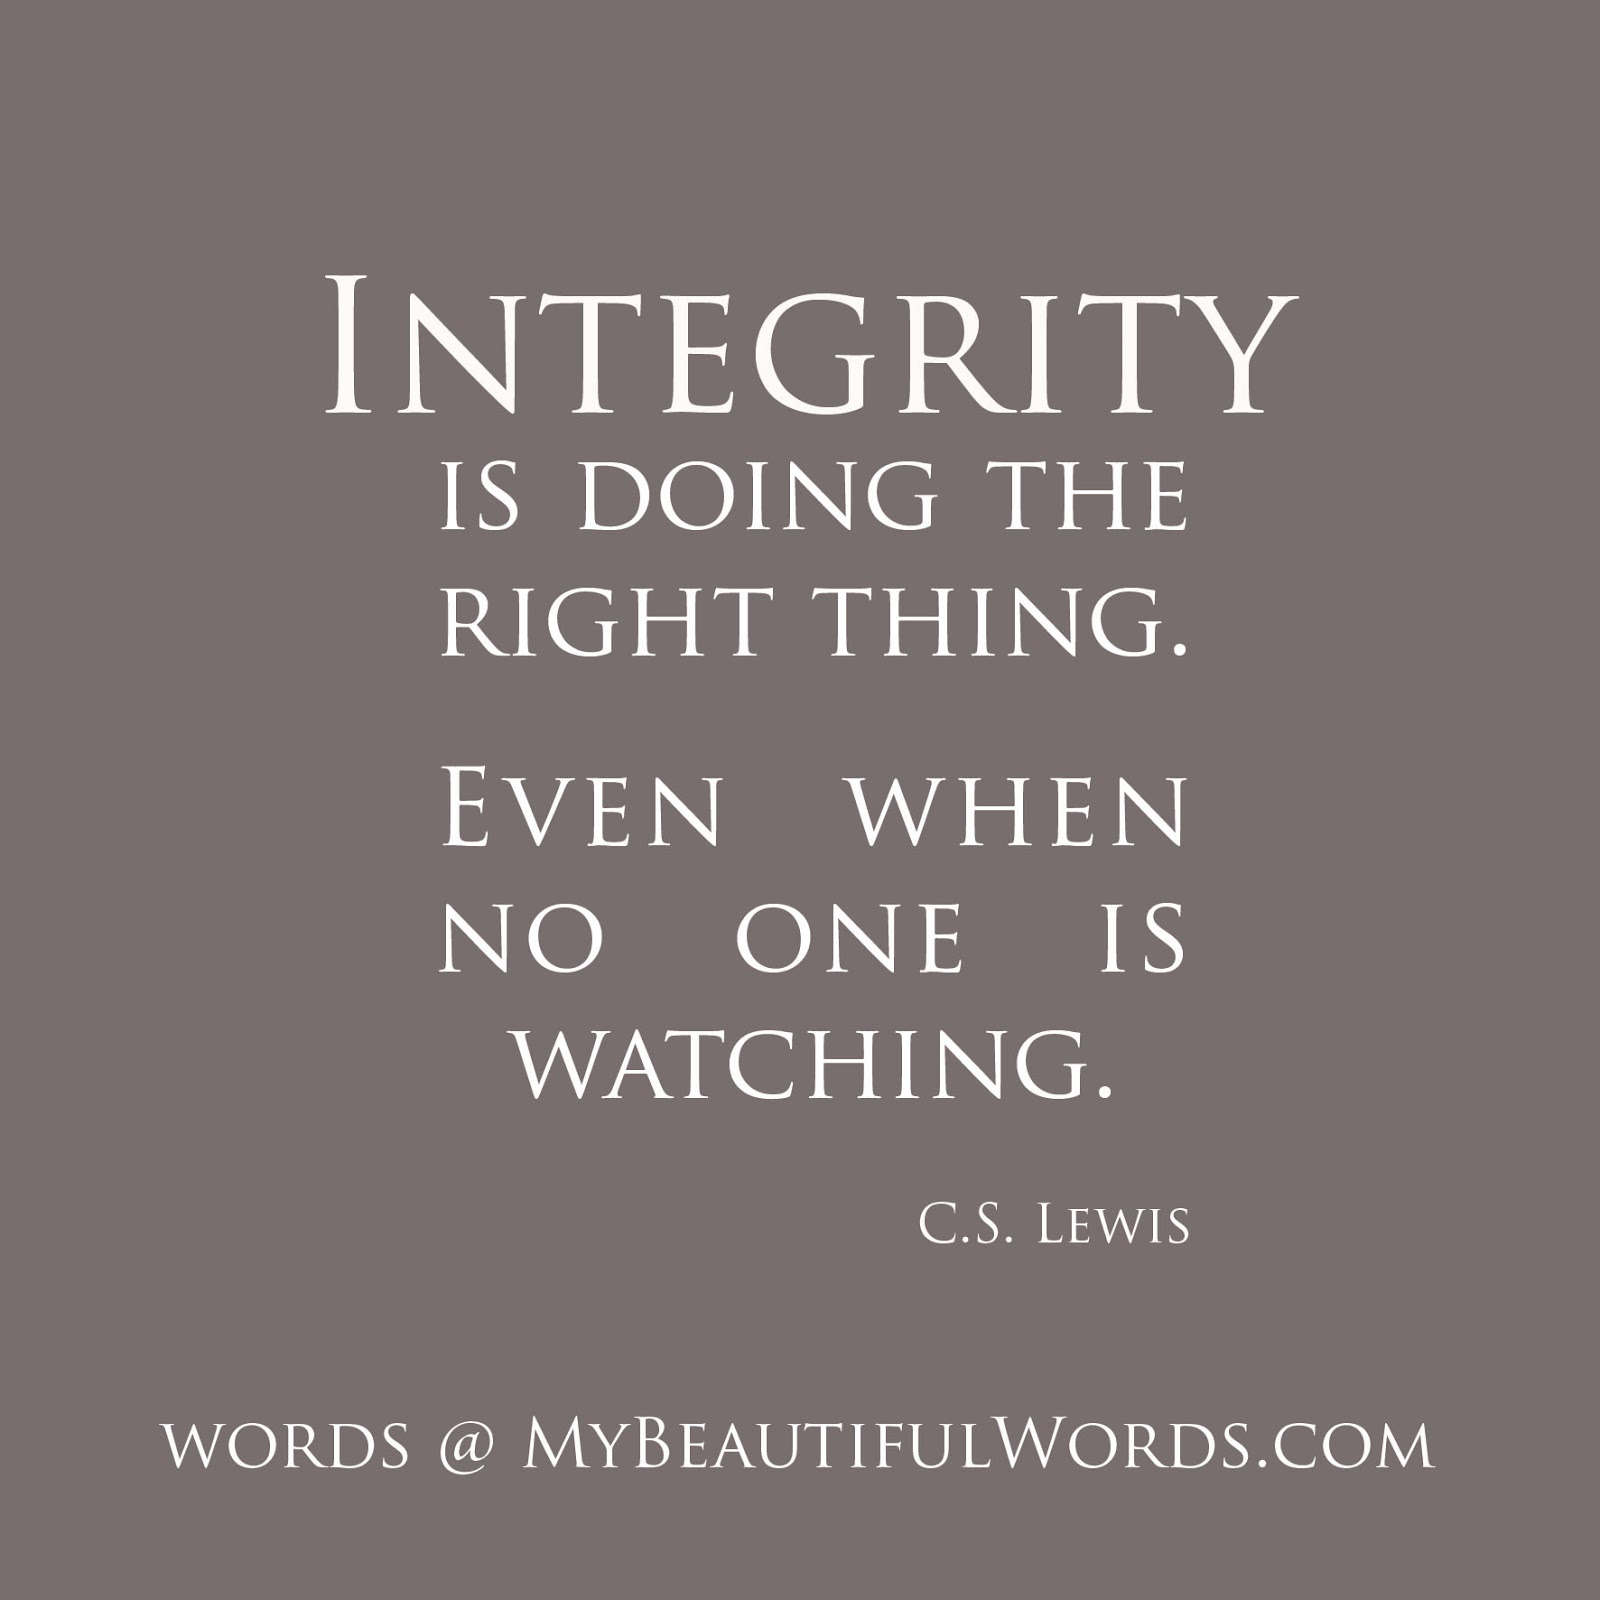 Leadership And Ethics Quotes: Famous Quotes Integrity Character. QuotesGram